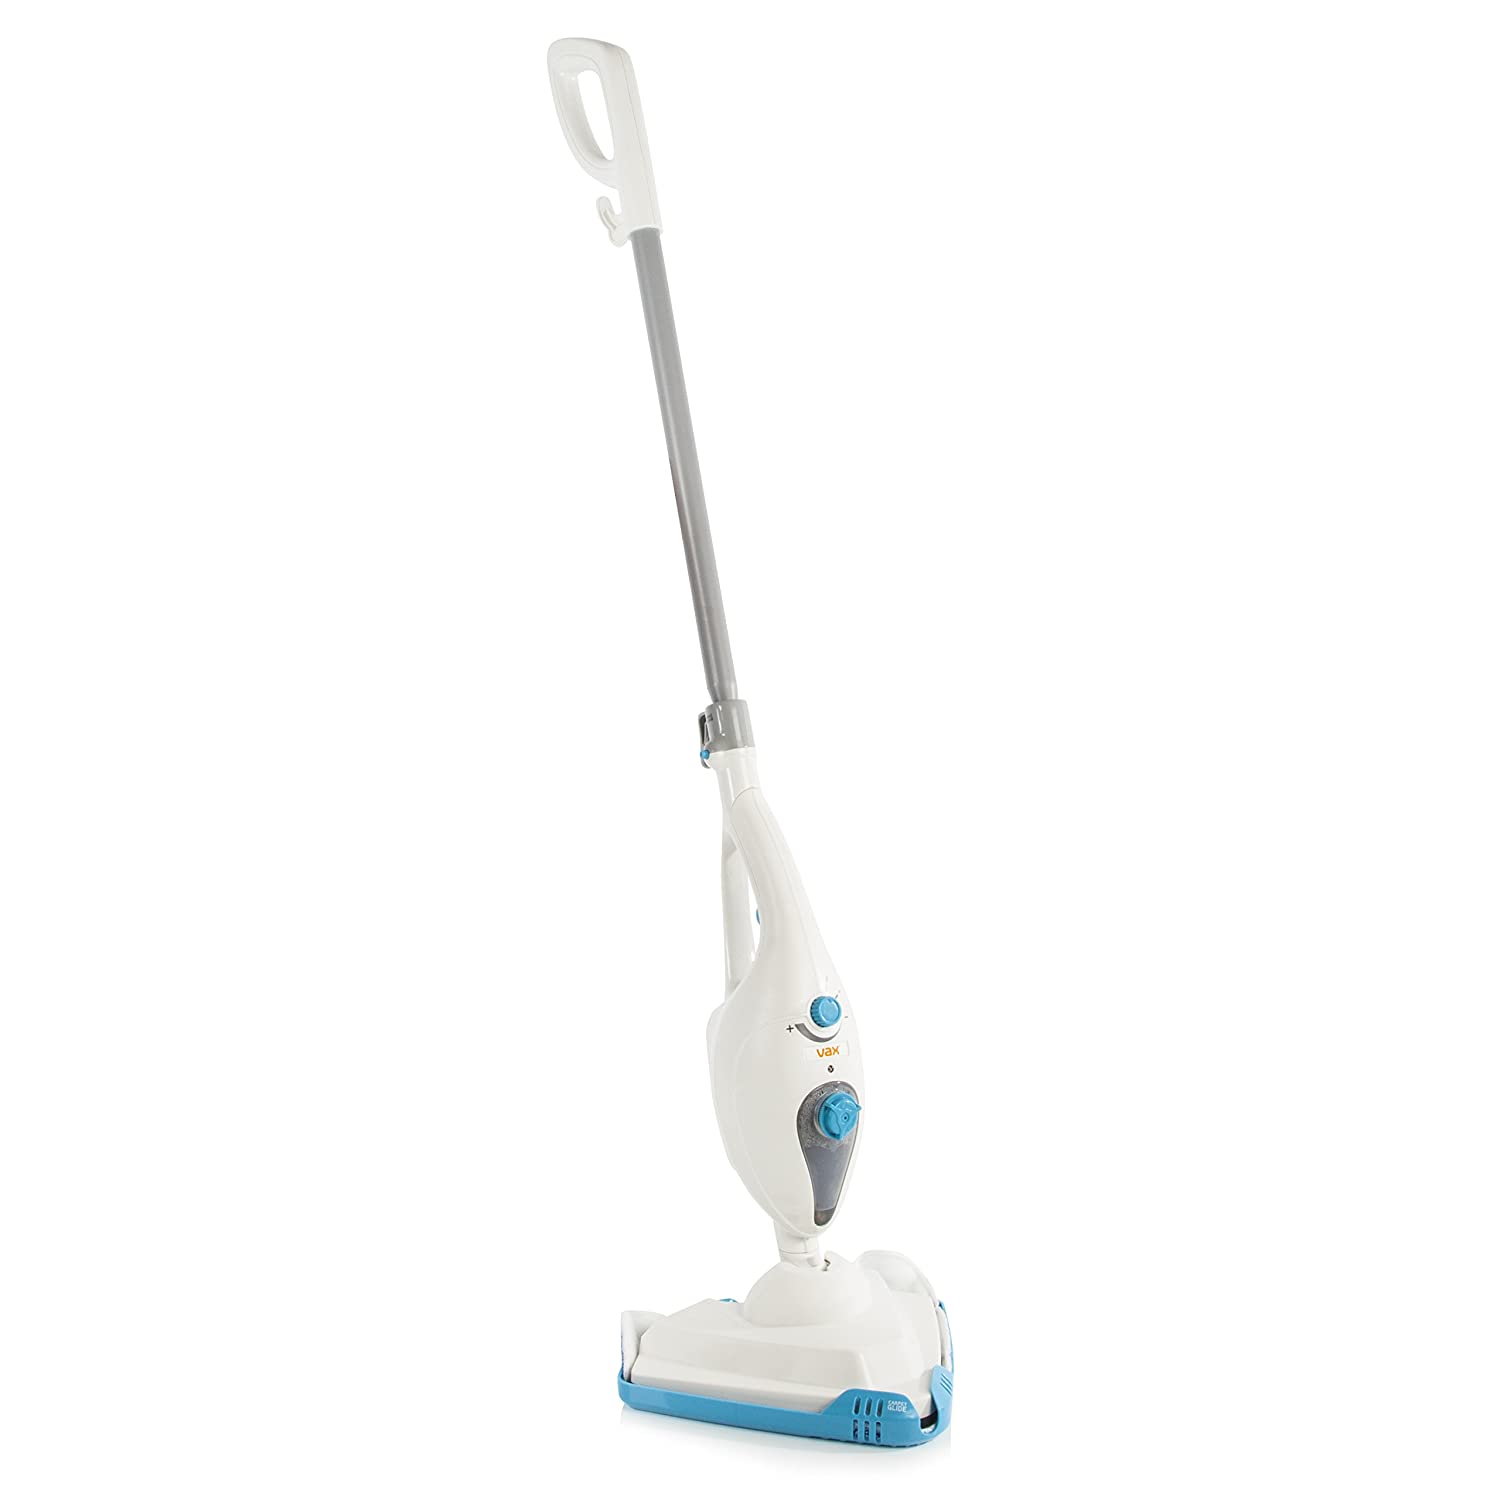 Vax VRS26 7-in-1 Powermax Steam Mop with Variable Steam Control, 1500 W